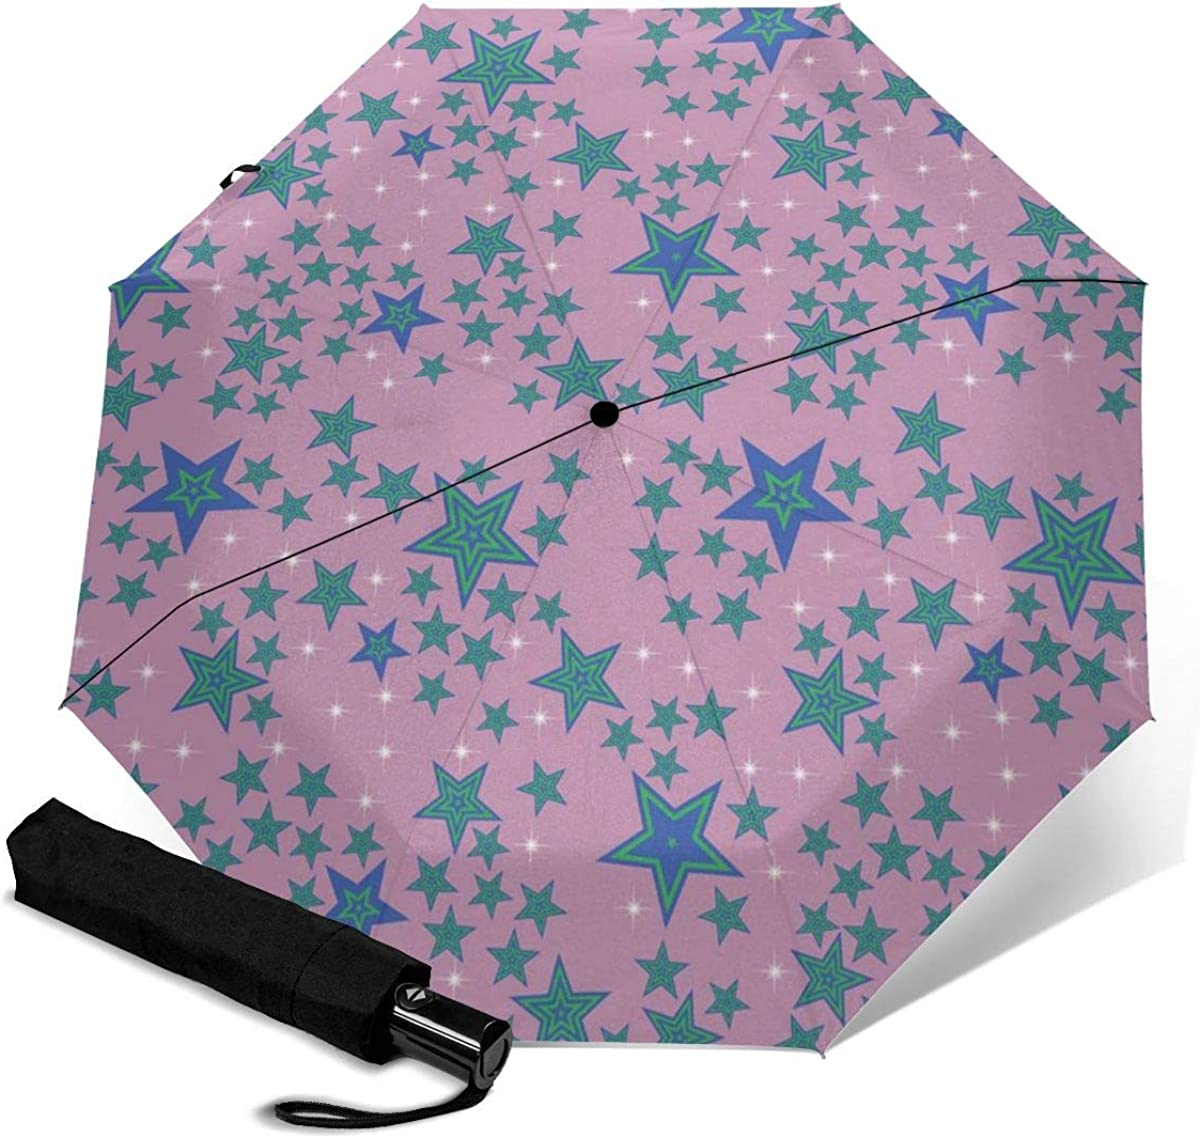 Seamless Stars Pattern Background Compact Travel Umbrella Windproof Reinforced Canopy 8 Ribs Umbrella Auto Open And Close Button Customized